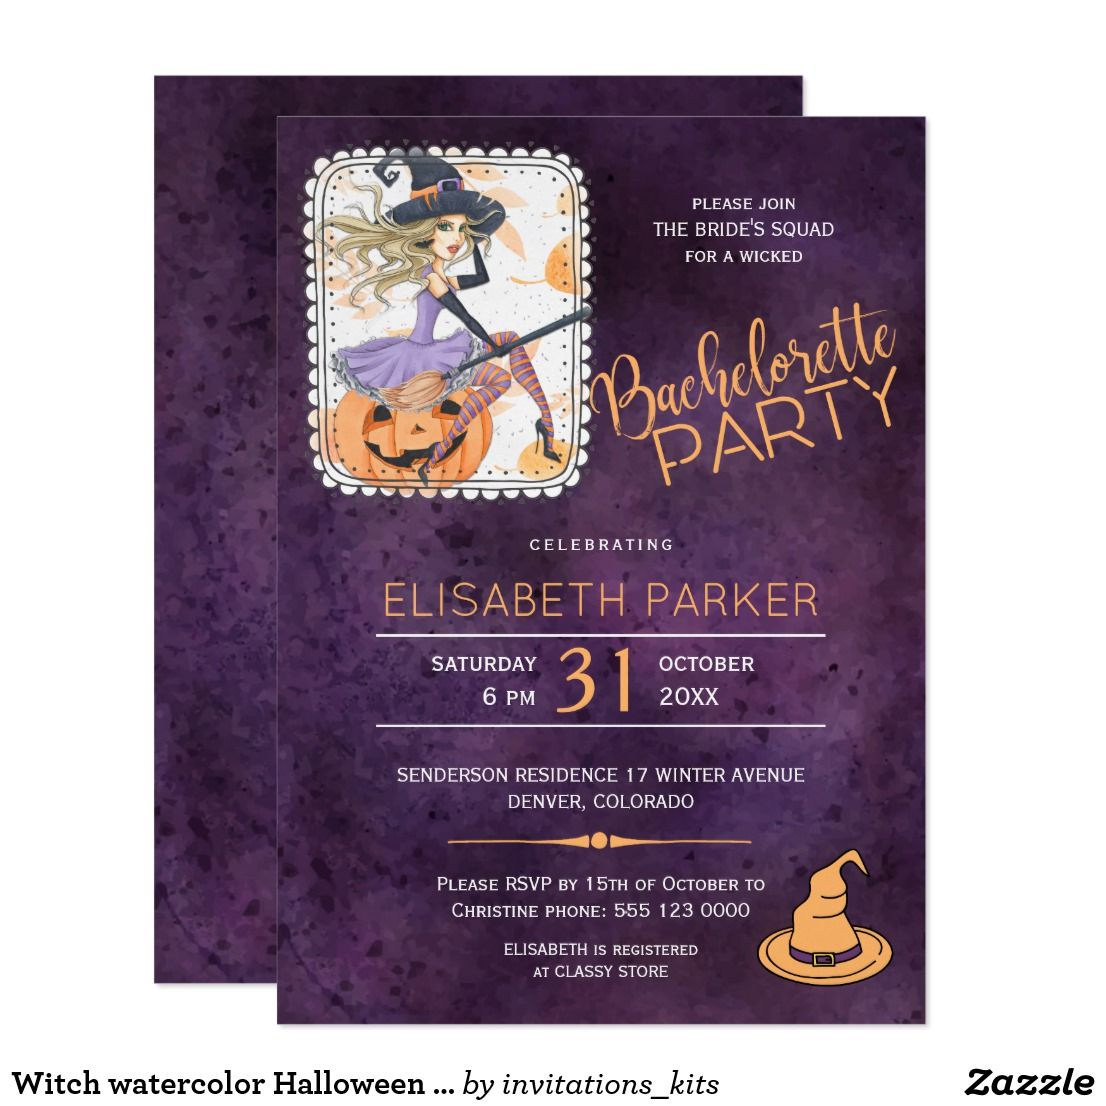 Witch watercolor Halloween bachelorette party Card   Witches